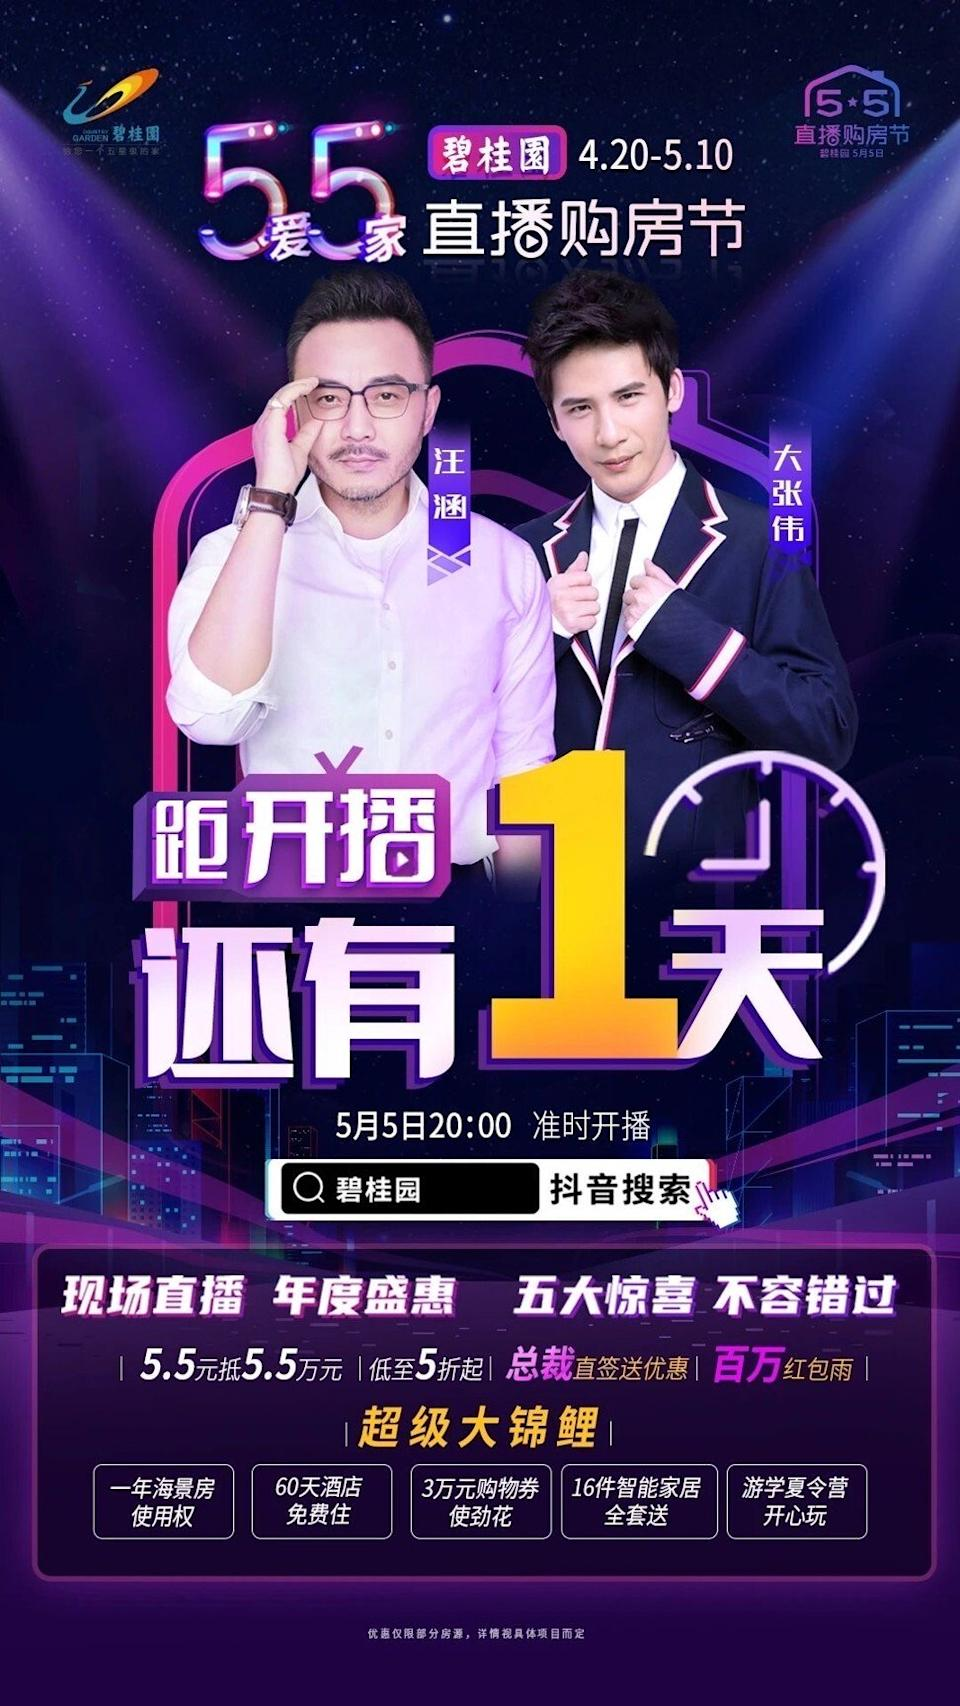 Country Garden Holdings is going to offer more than 10,000 homes on live streaming platform TikTok on May 5. Photo: Handout